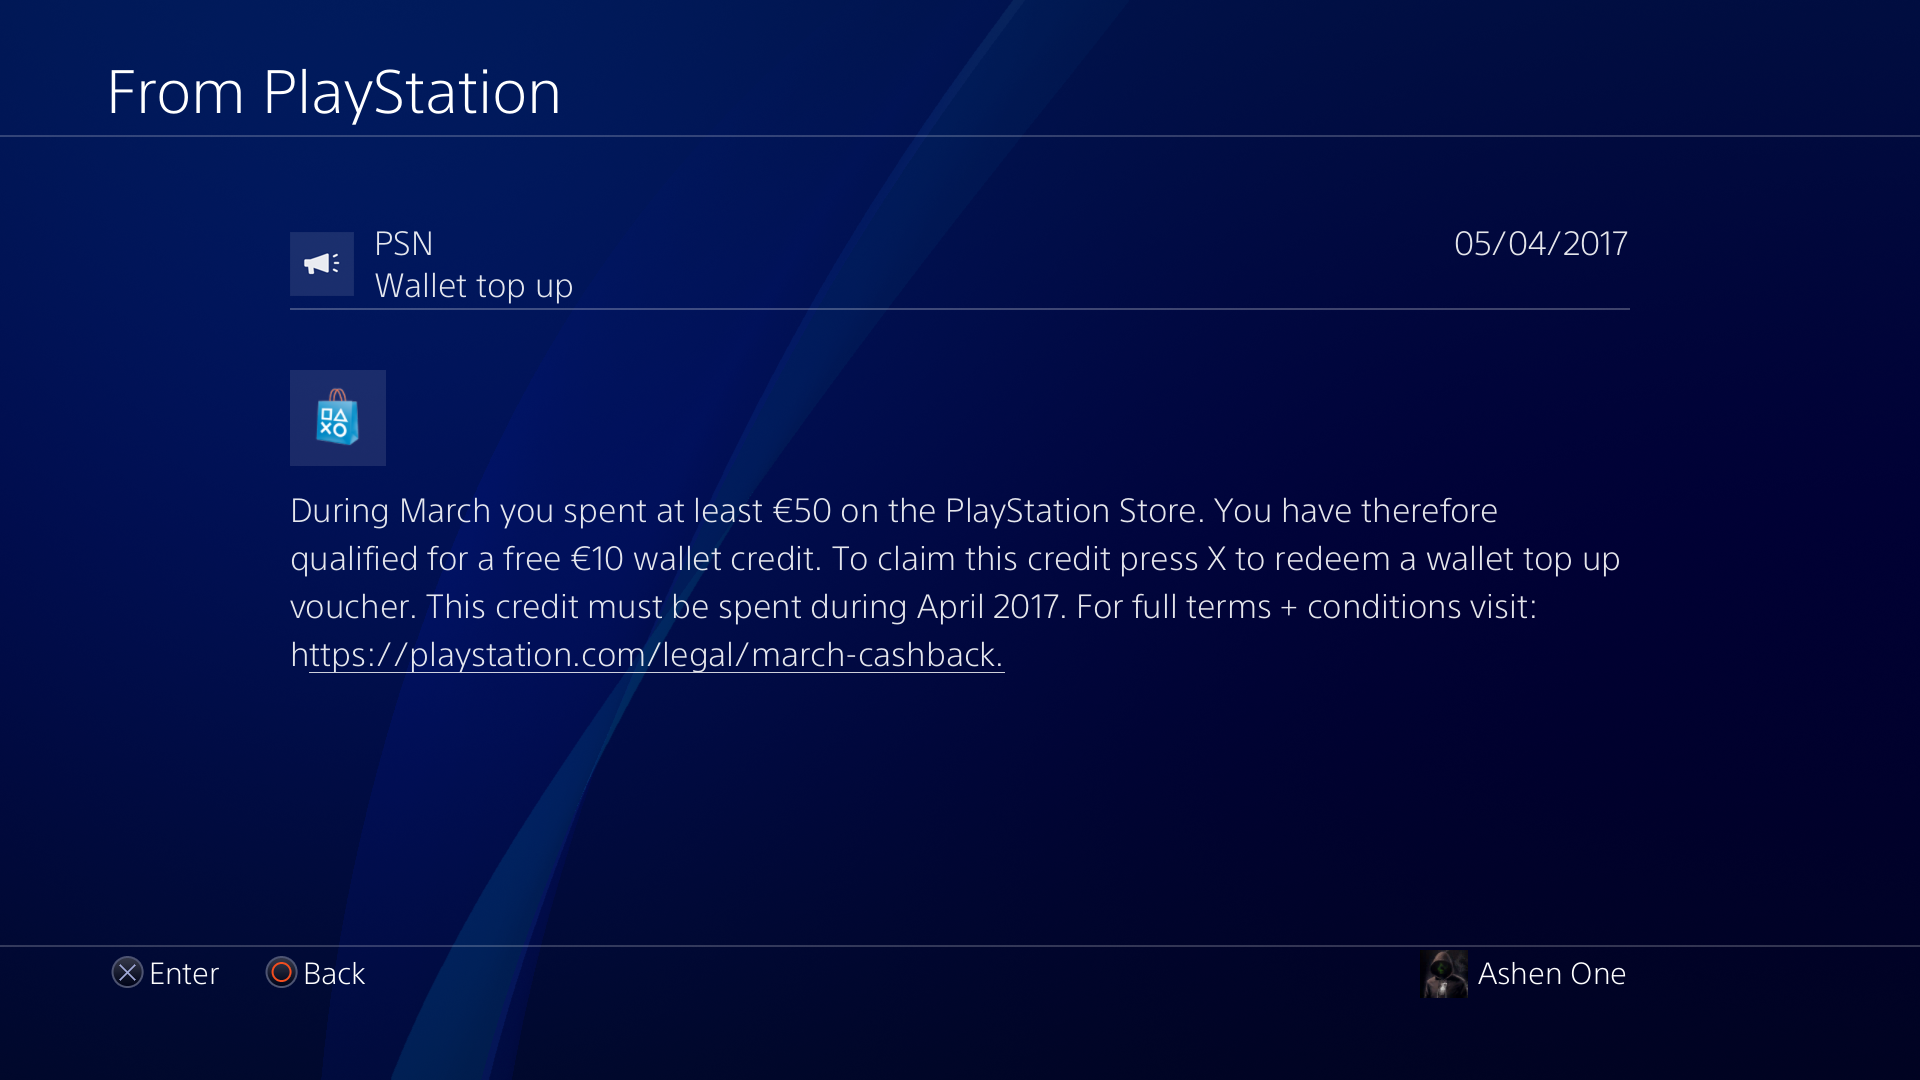 Sony Started Sending The Messages For The 10 Credit Back Offer Screenshot Eu Playstation4 Ps4 Sony Videogames Playstatio Messages Playstation Psn Sony